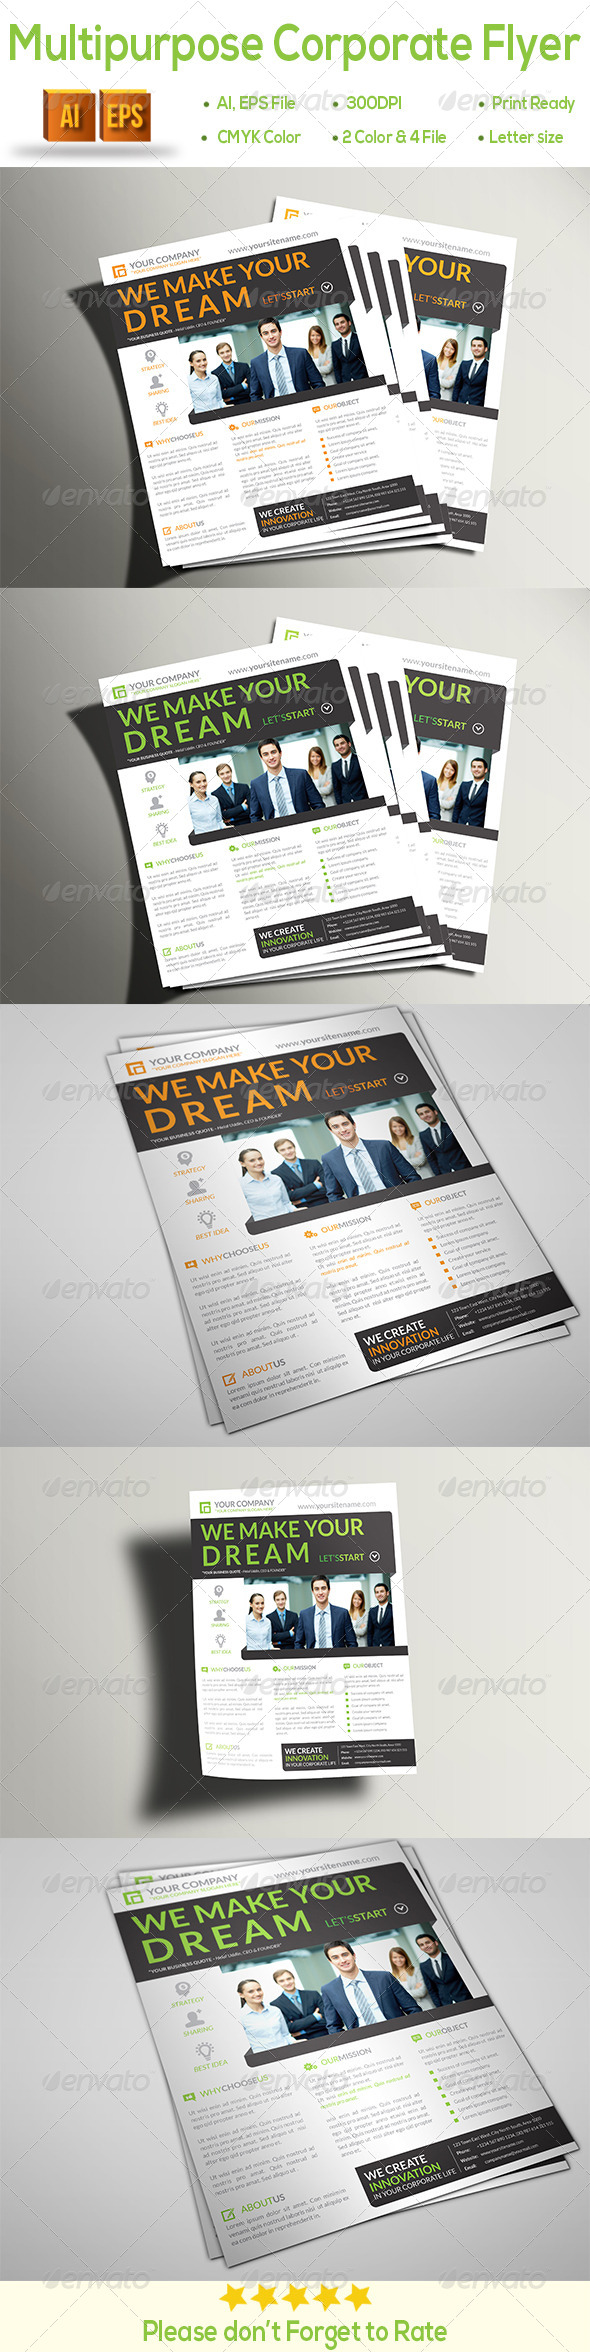 GraphicRiver Multipurpose Corporate Flyer 8550585